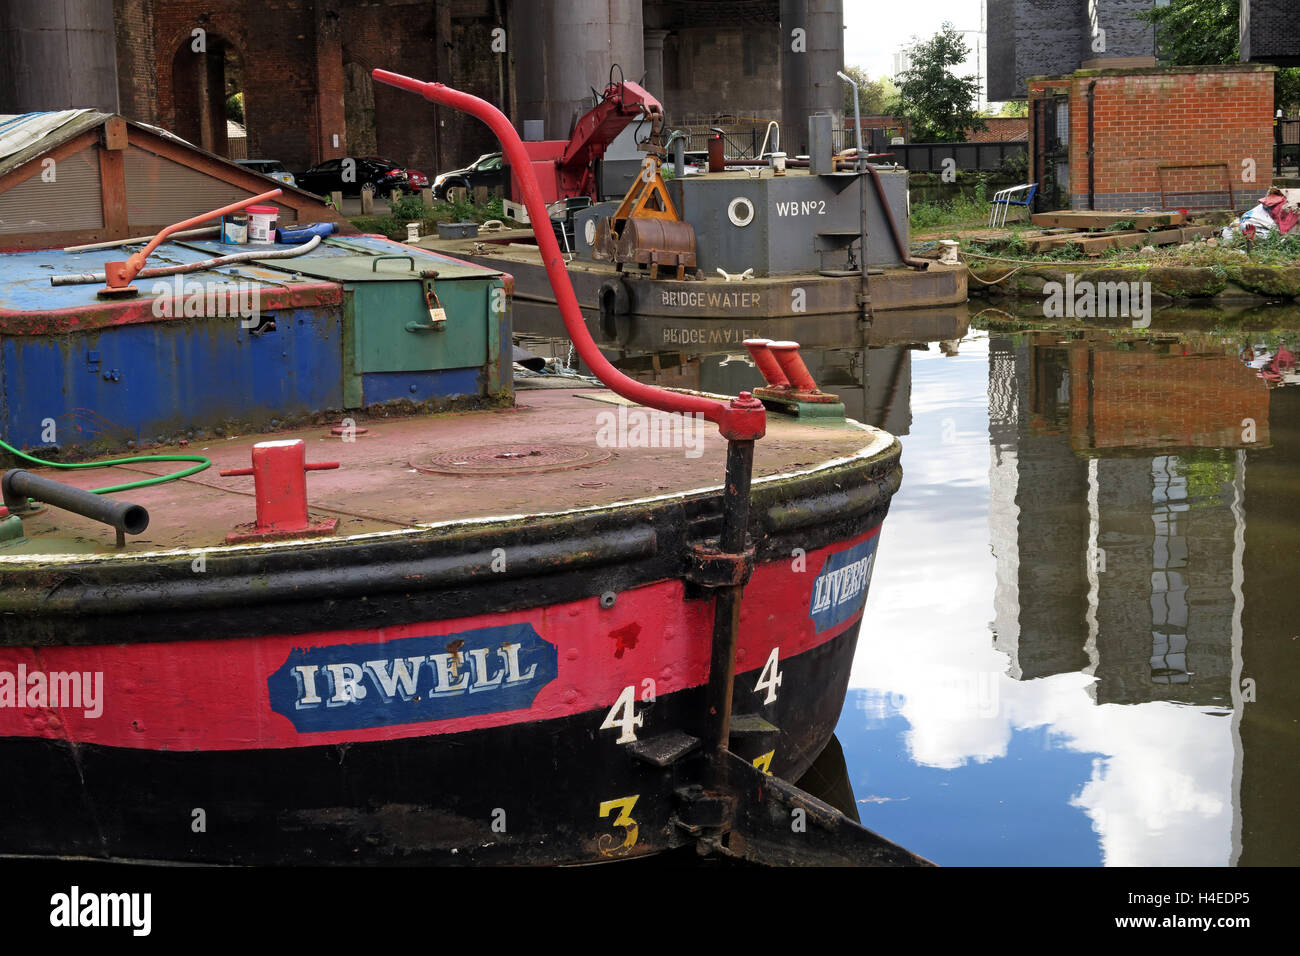 The Irwell Leeds & Liverpool Canal Shortboat Irwell at Castlefields, ,Manchester,England,UK - Stock Image